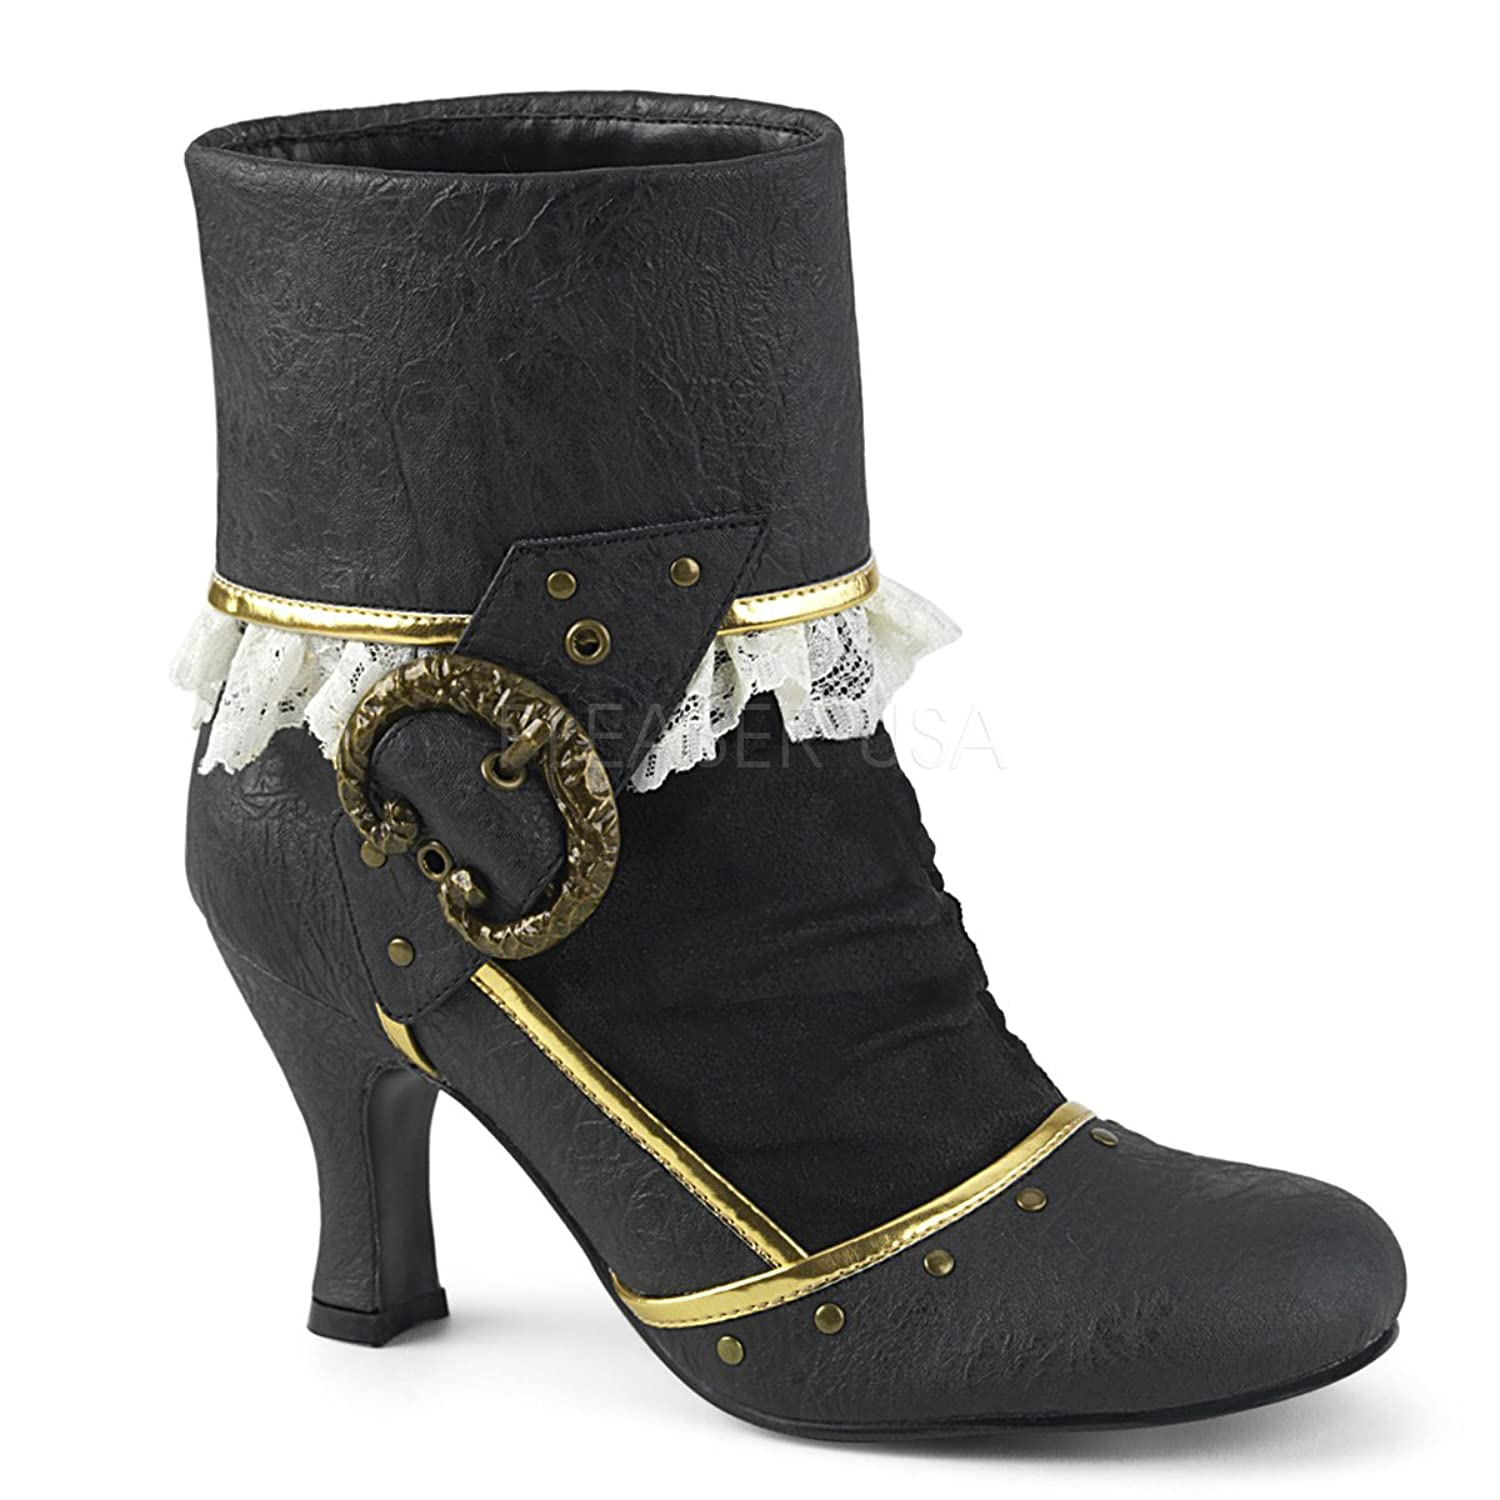 Women's Black & Gold Matey Buckle Lace Trim Ankle Boots - DeluxeAdultCostumes.com